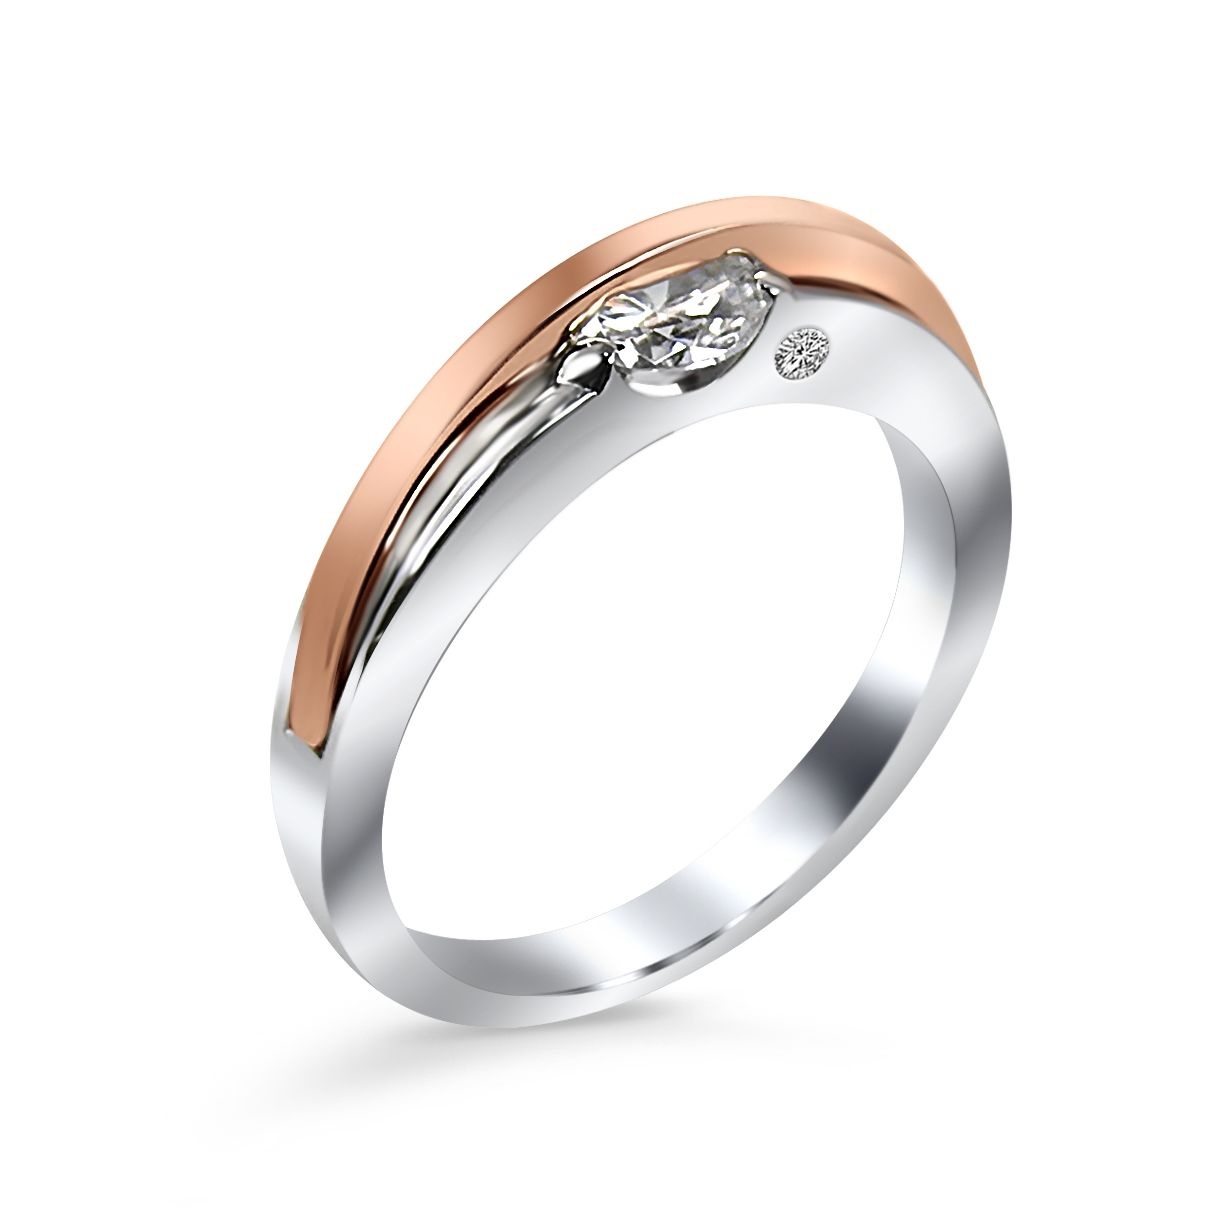 Modern Engagement Ring Designs Contemporary By Frank Reubel